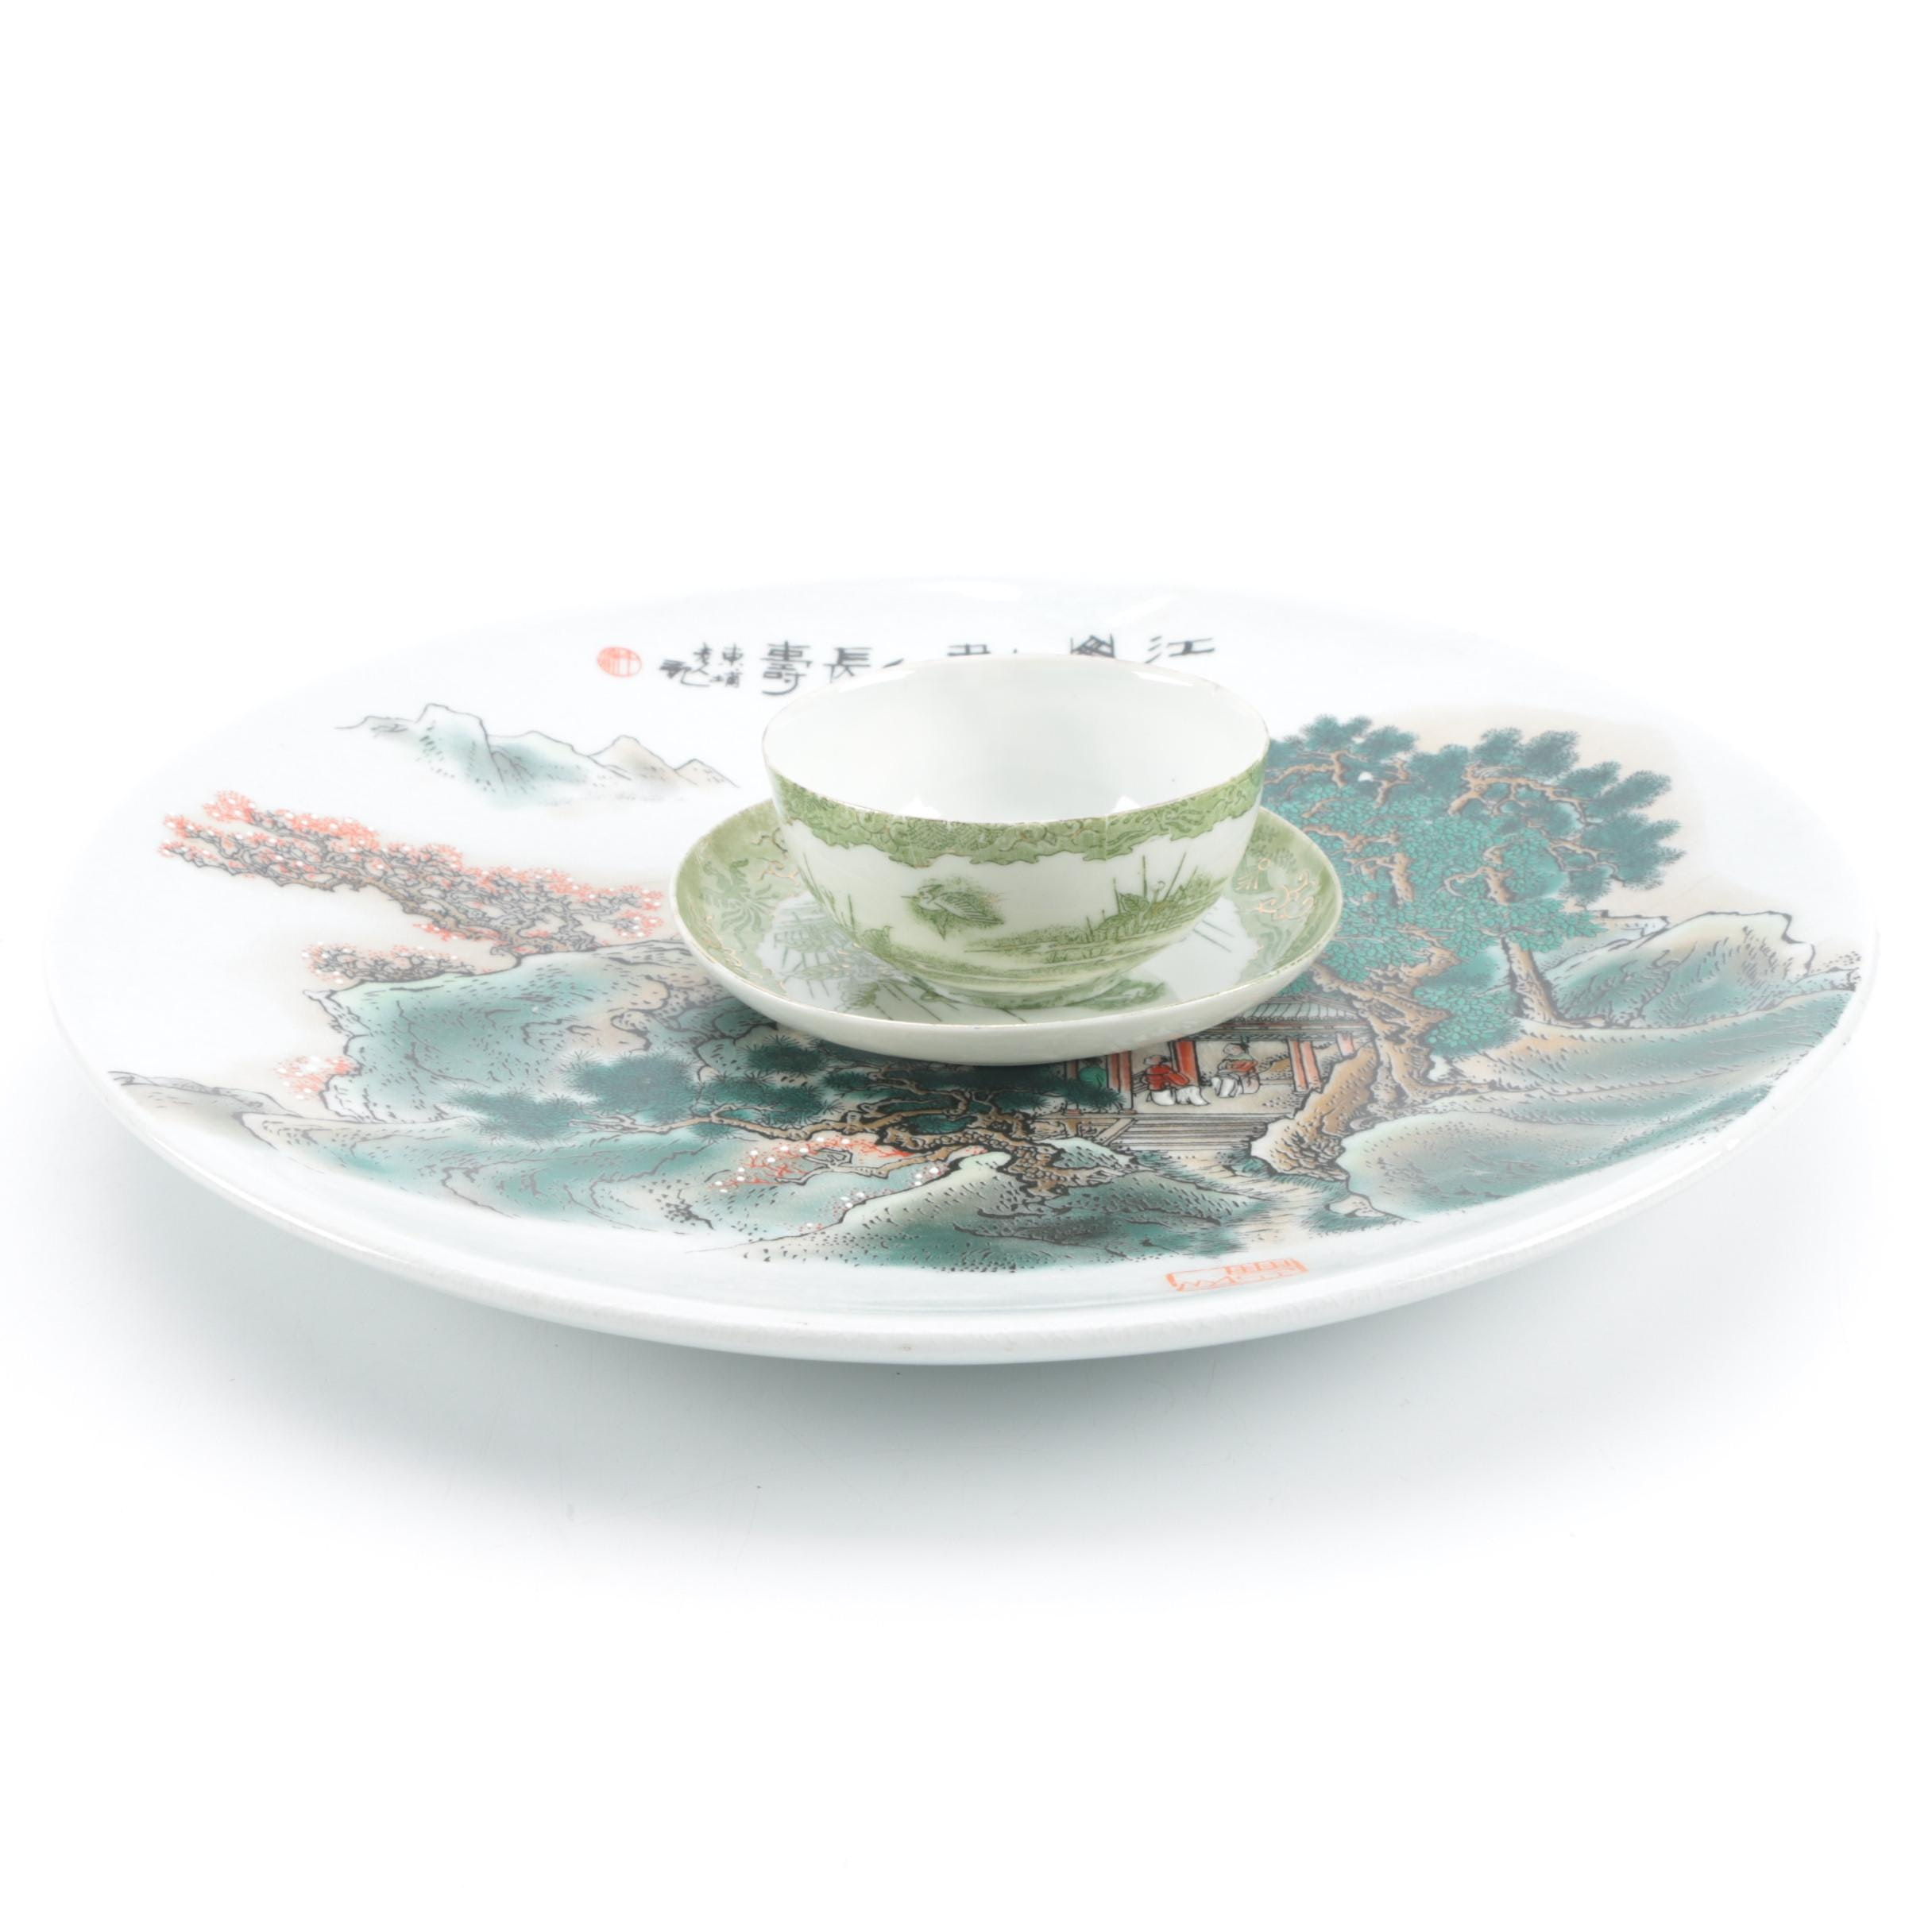 Decorative Porcelain Tableware